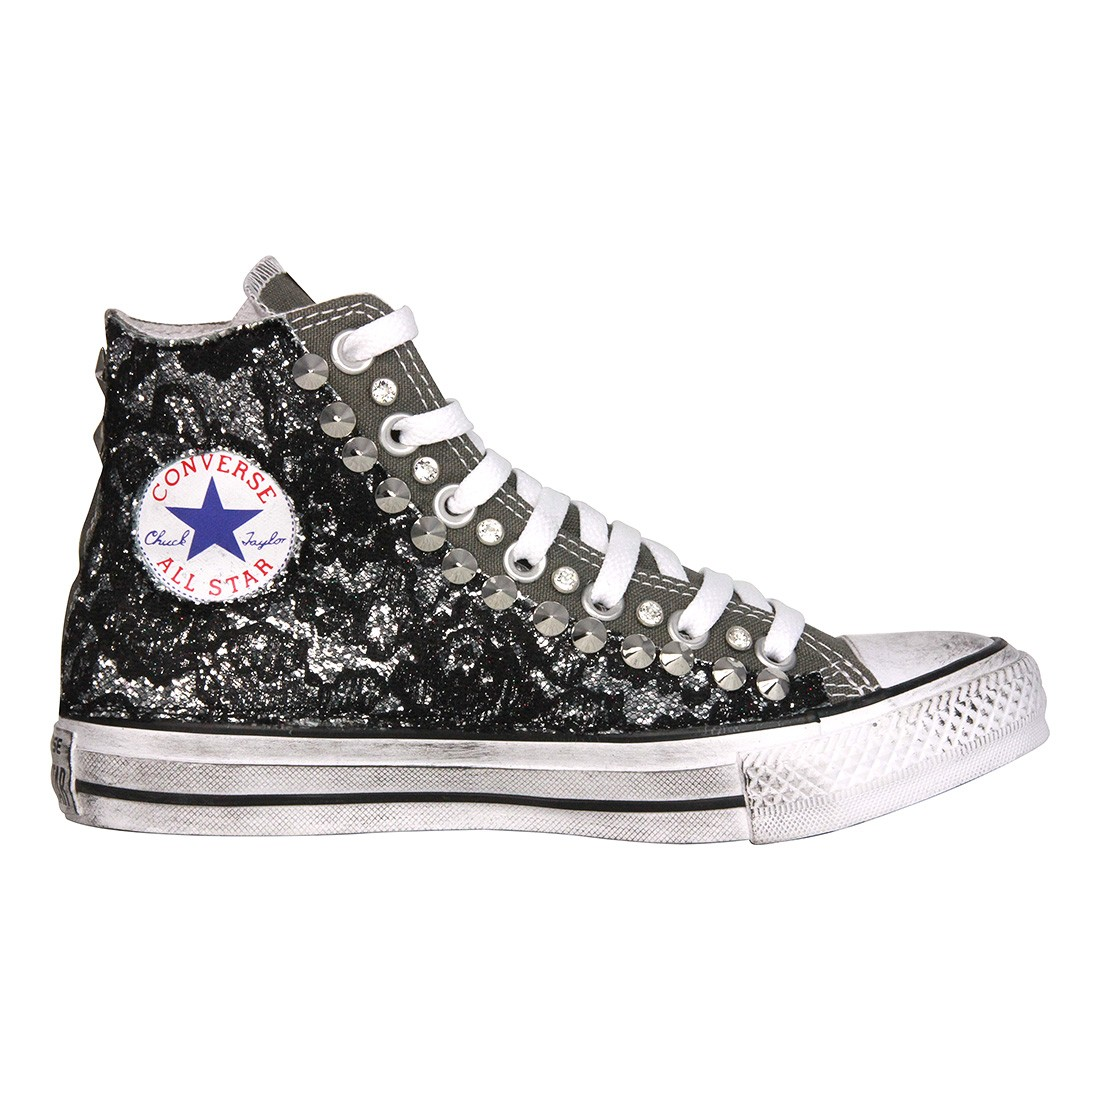 converse nere paillettes. Black Bedroom Furniture Sets. Home Design Ideas